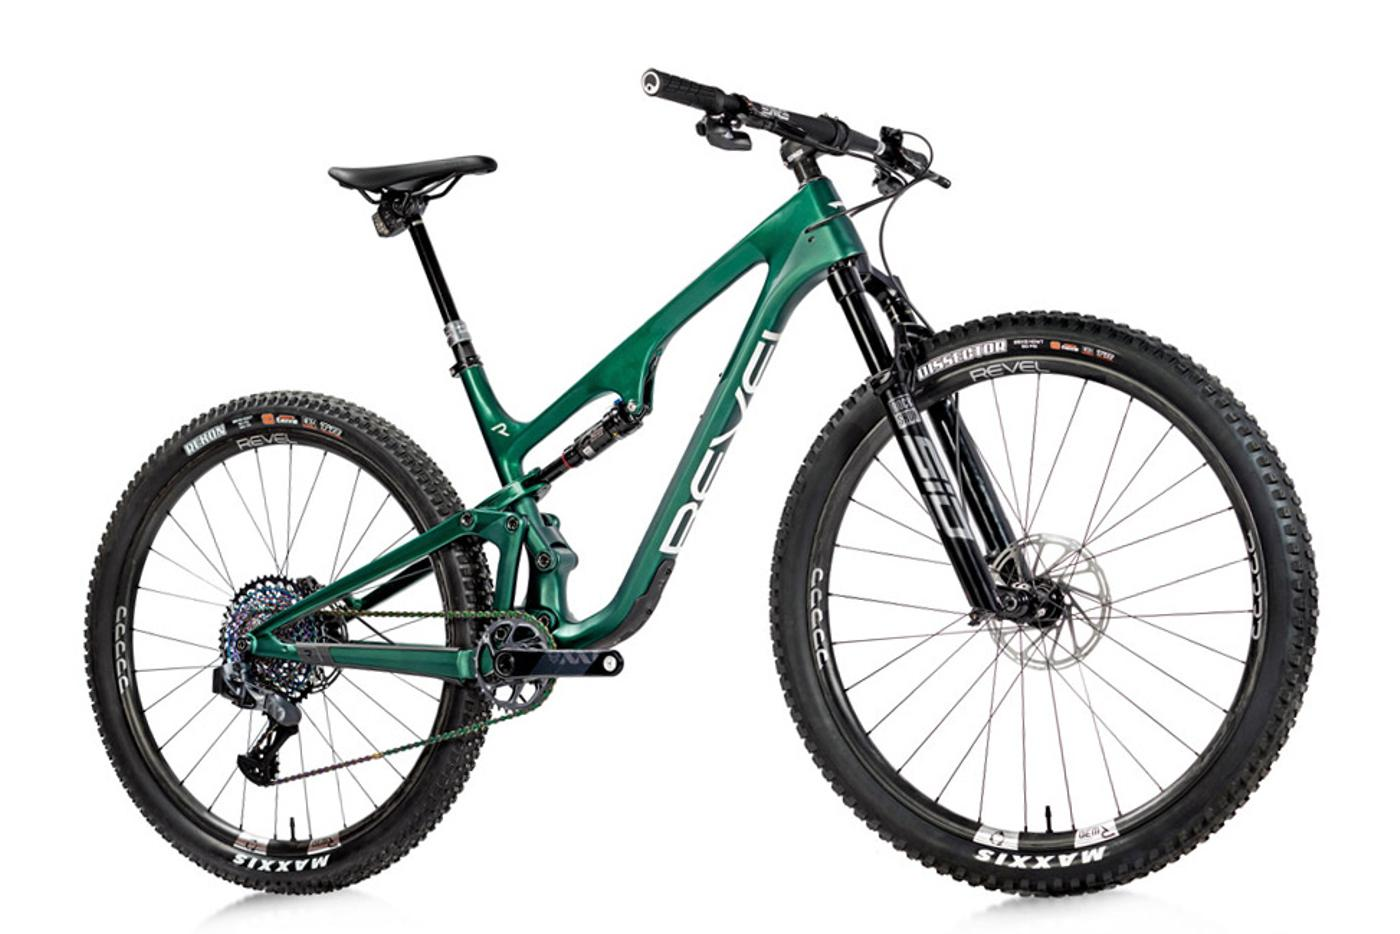 Revel's New Ranger Scouts the Backcountry Trails